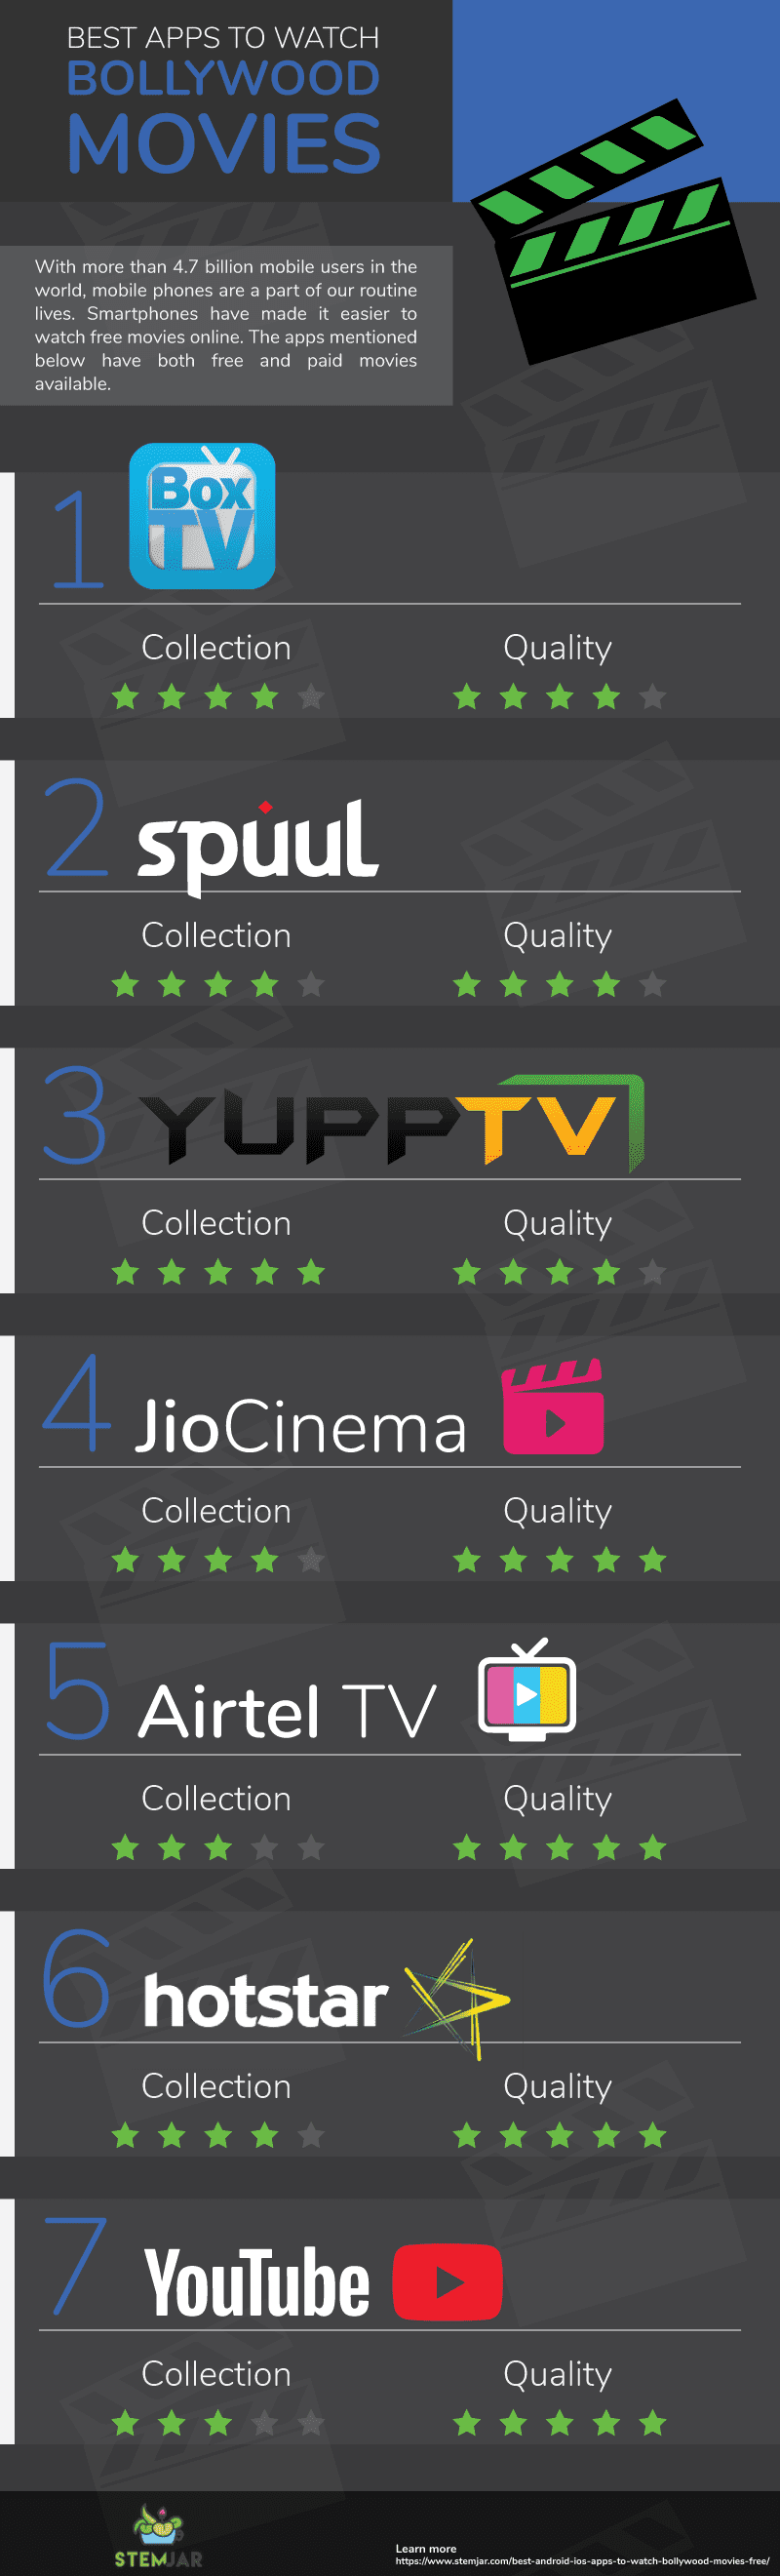 bollywood movies apps info graphic